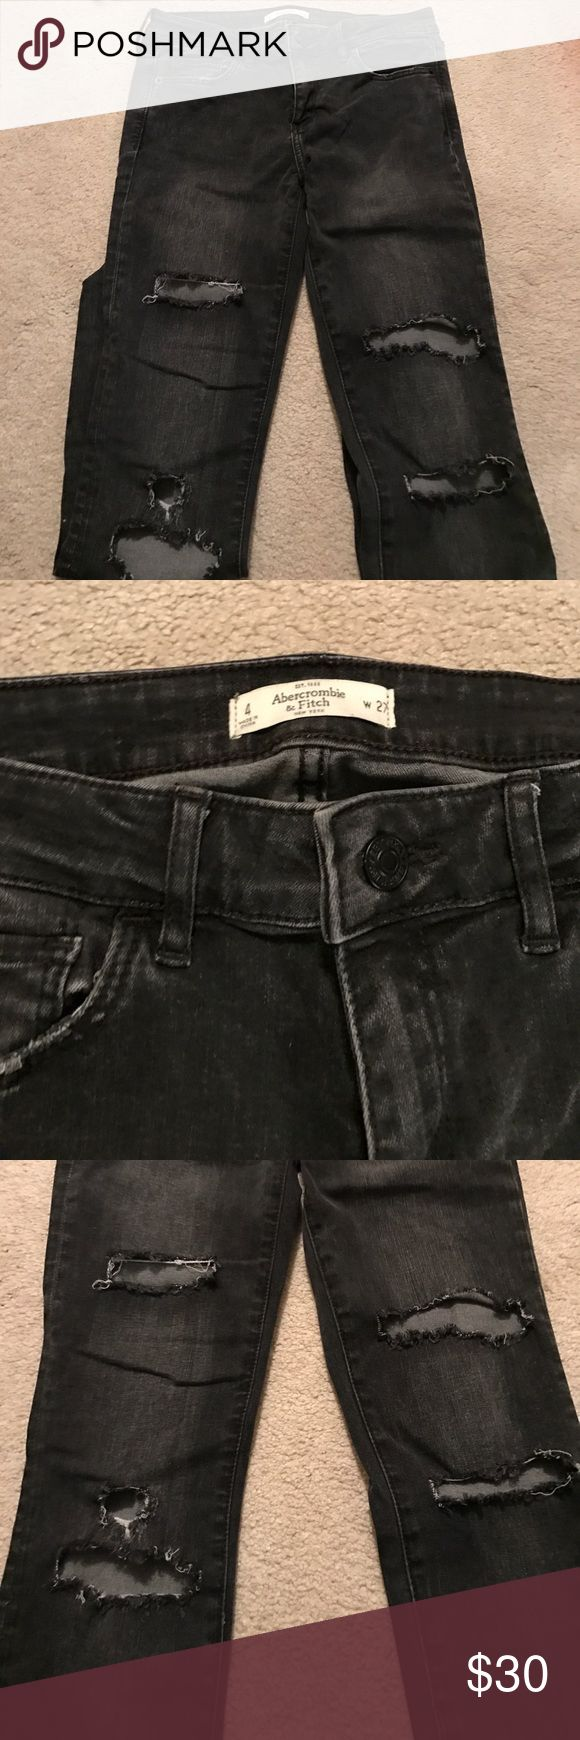 Abercrombie and Fitch jeans Dark grey. Distressed. Only wore once! Jean legging fit Abercrombie & Fitch Jeans Skinny